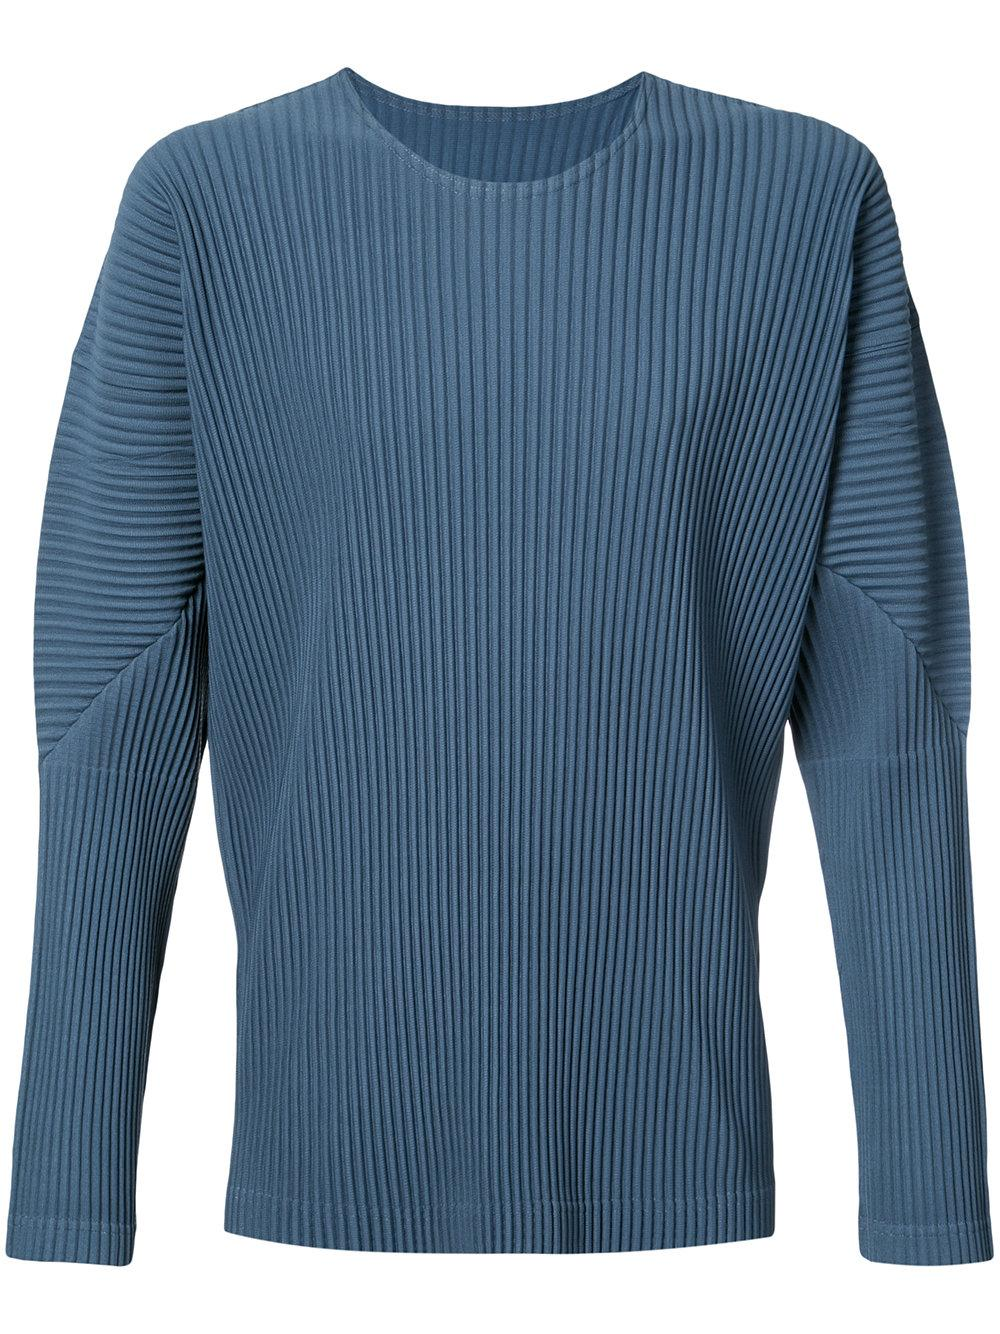 homme pliss issey miyake long sleeve t shirt in blue for men lyst. Black Bedroom Furniture Sets. Home Design Ideas